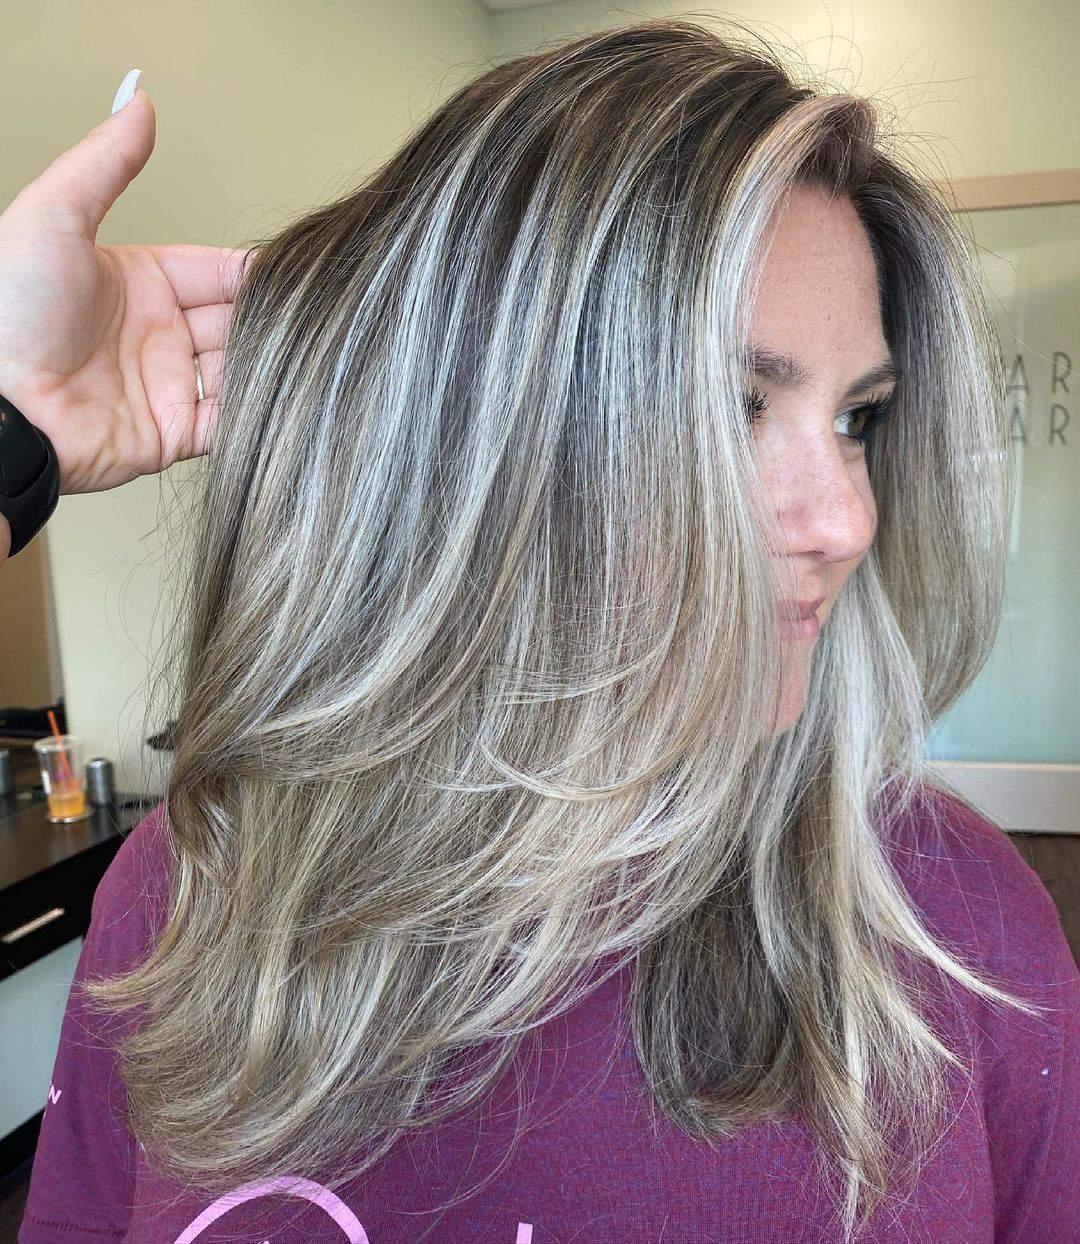 40+ Awesome Hairstyles For Girls With Long Hair images 3